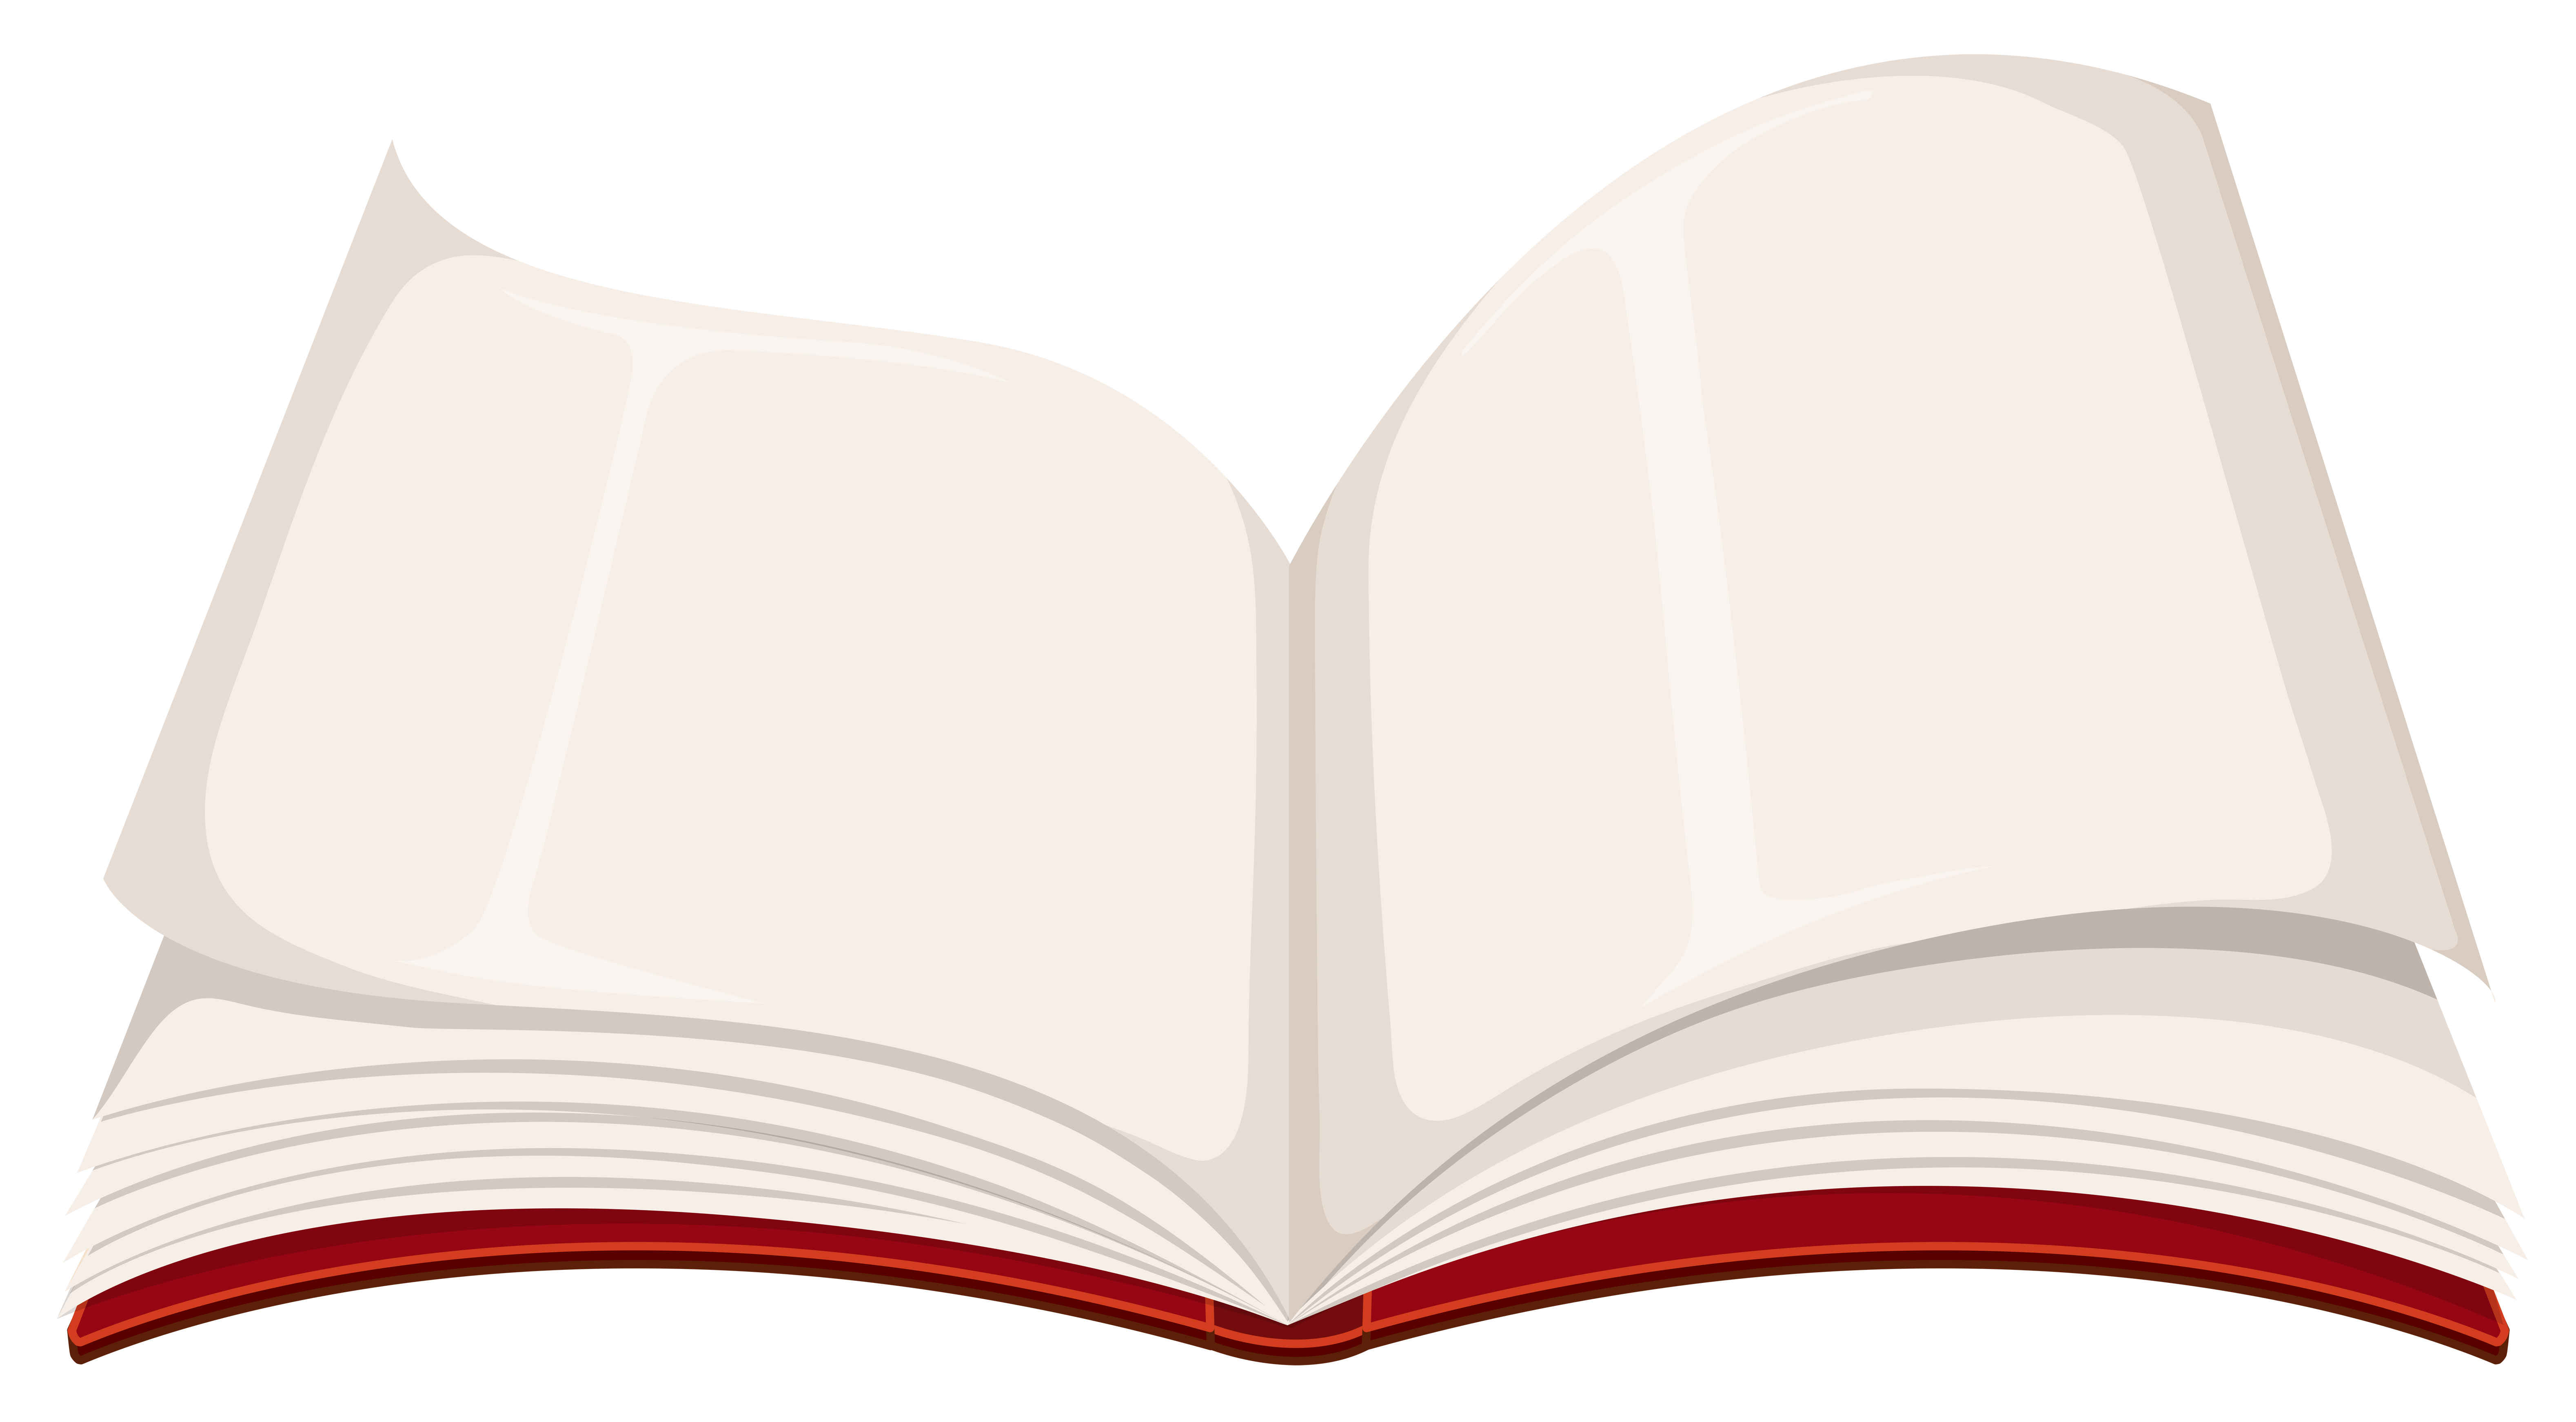 A blank open book - Download Free Vectors, Clipart